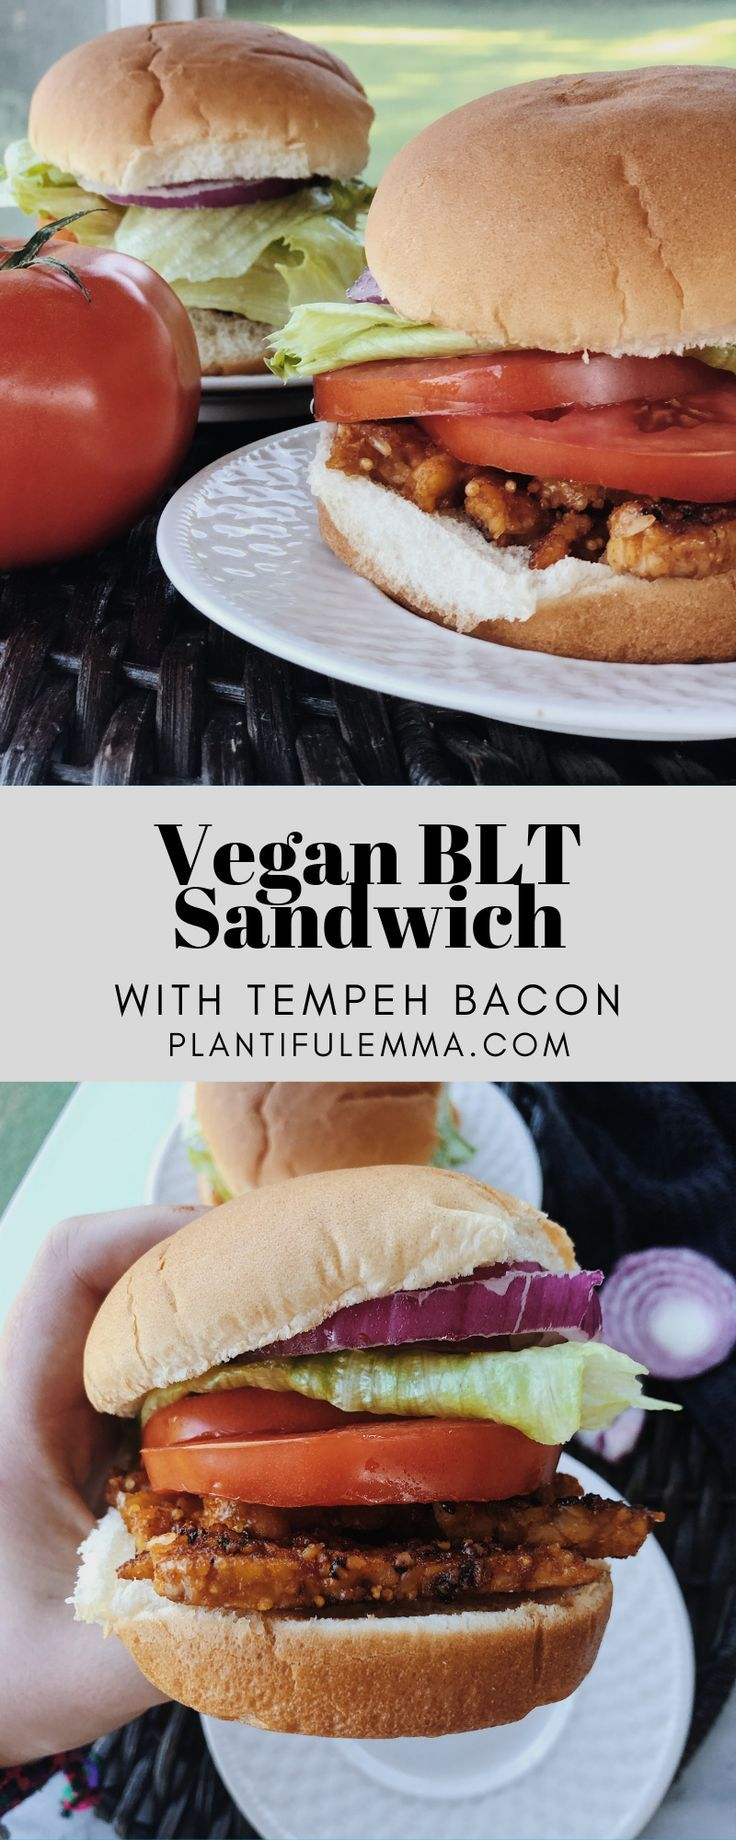 The Best Vegan BLT Sandwich  BLT sandwiches used to be my all-time favorite. Anytime we would stop